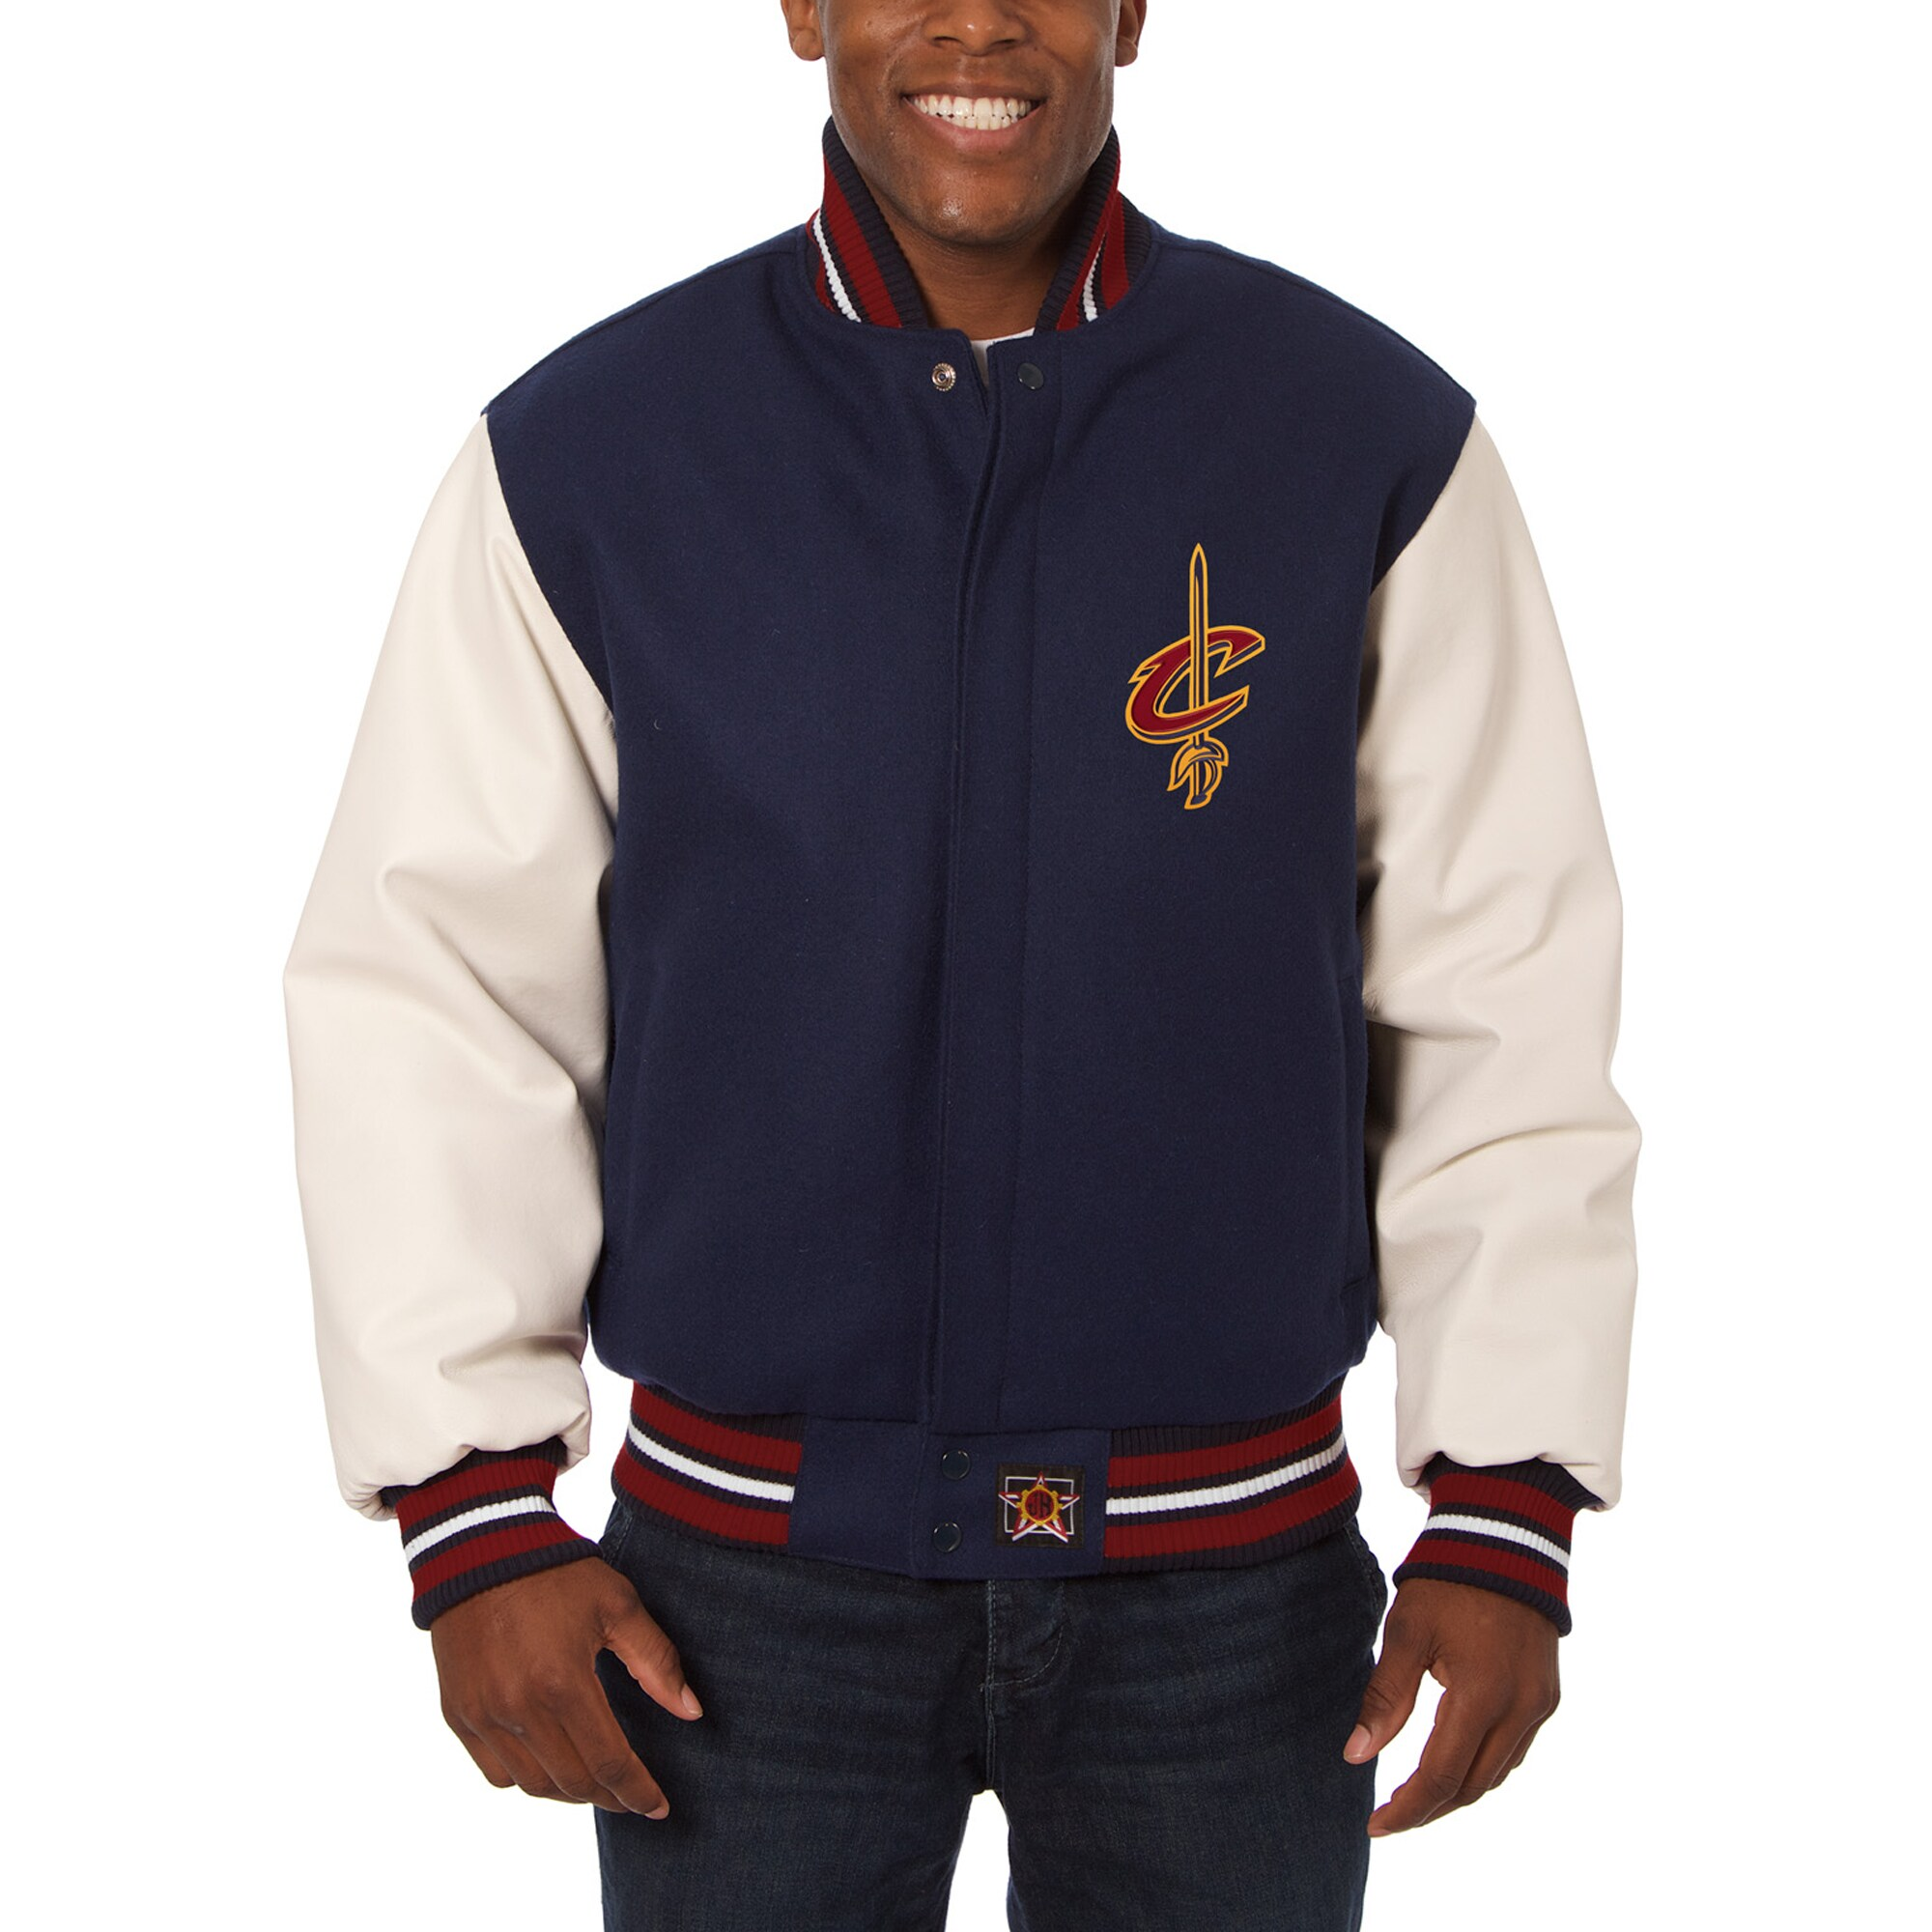 Cleveland Cavaliers JH Design Big & Tall Wool & Leather Jacket - Navy/White